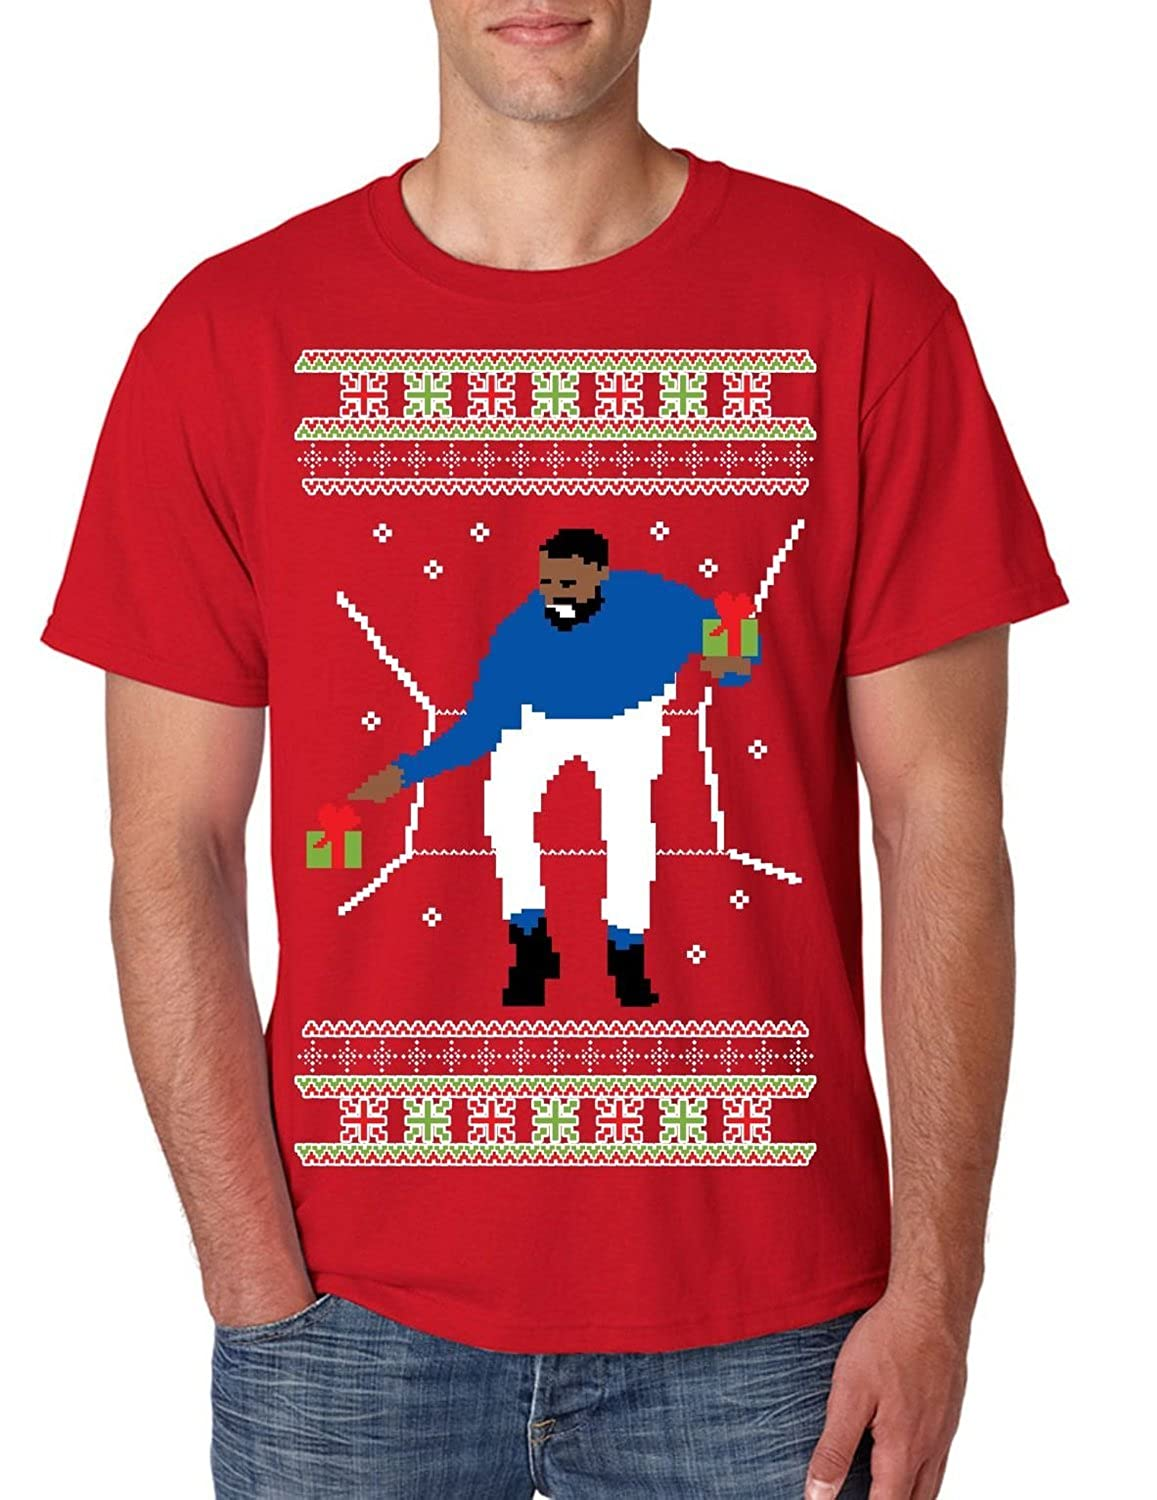 Allntrends Men's T Shirt 1-800 Hotline Bling Ugly Christmas Sweater